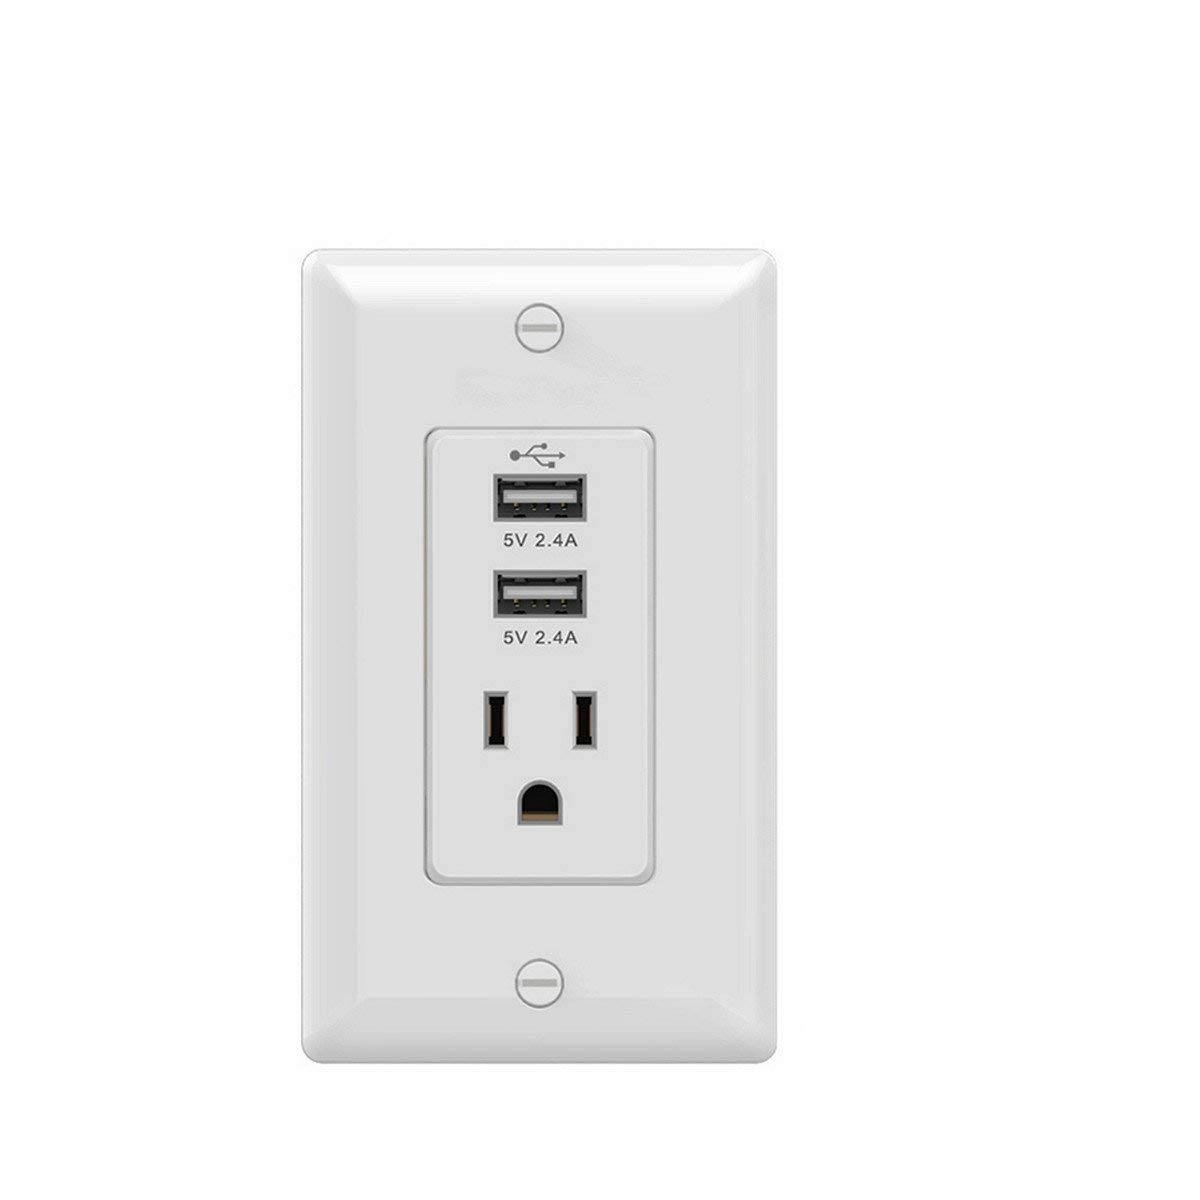 Standard Outlet Dual USB Ports Wall Mount Power Plate